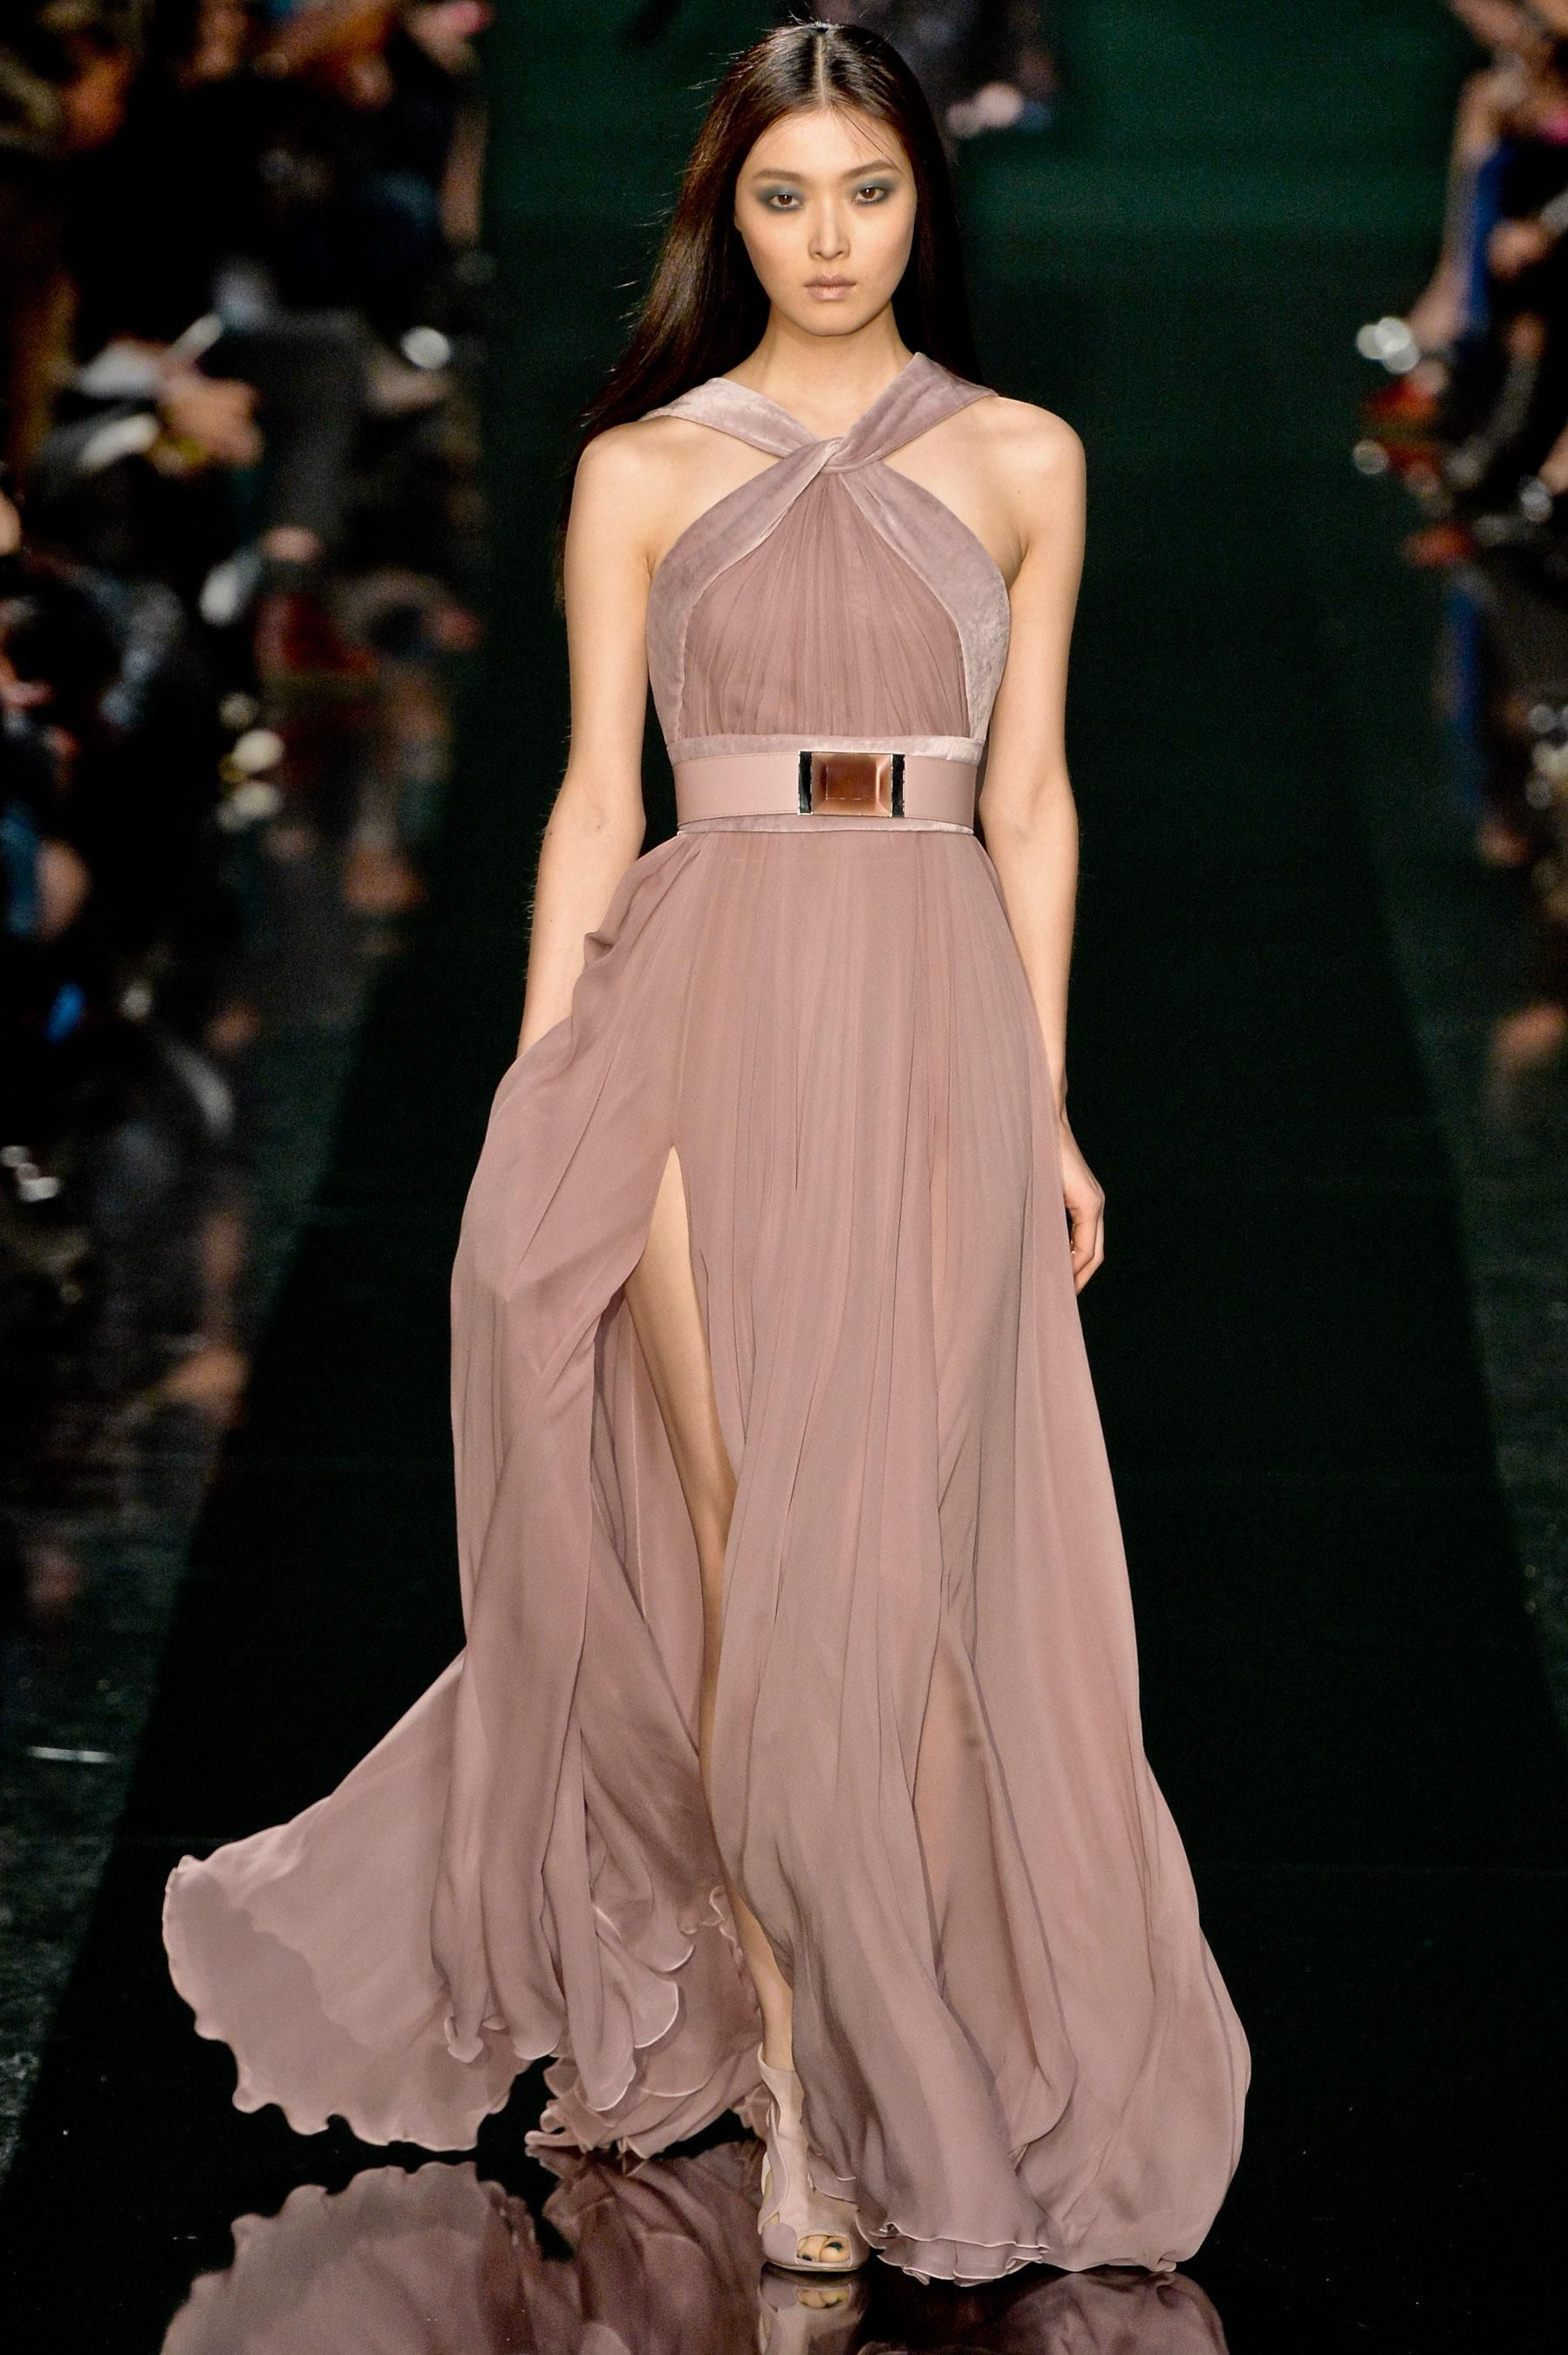 elie saab - Google Search | Clothing formal | Pinterest | Elie saab ...